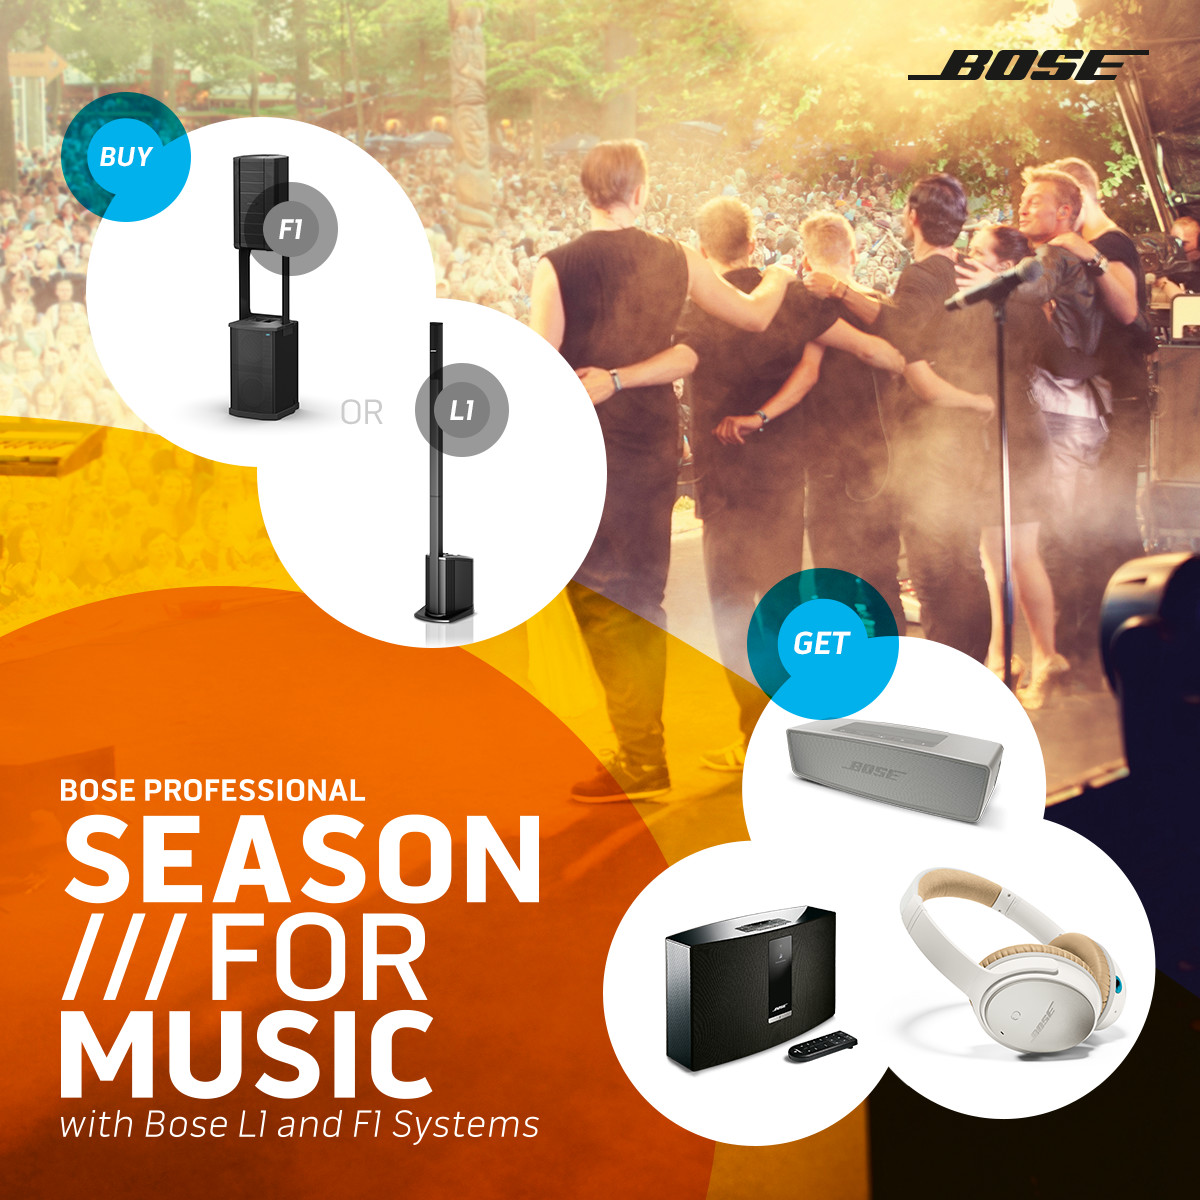 Bose - Summer For Music